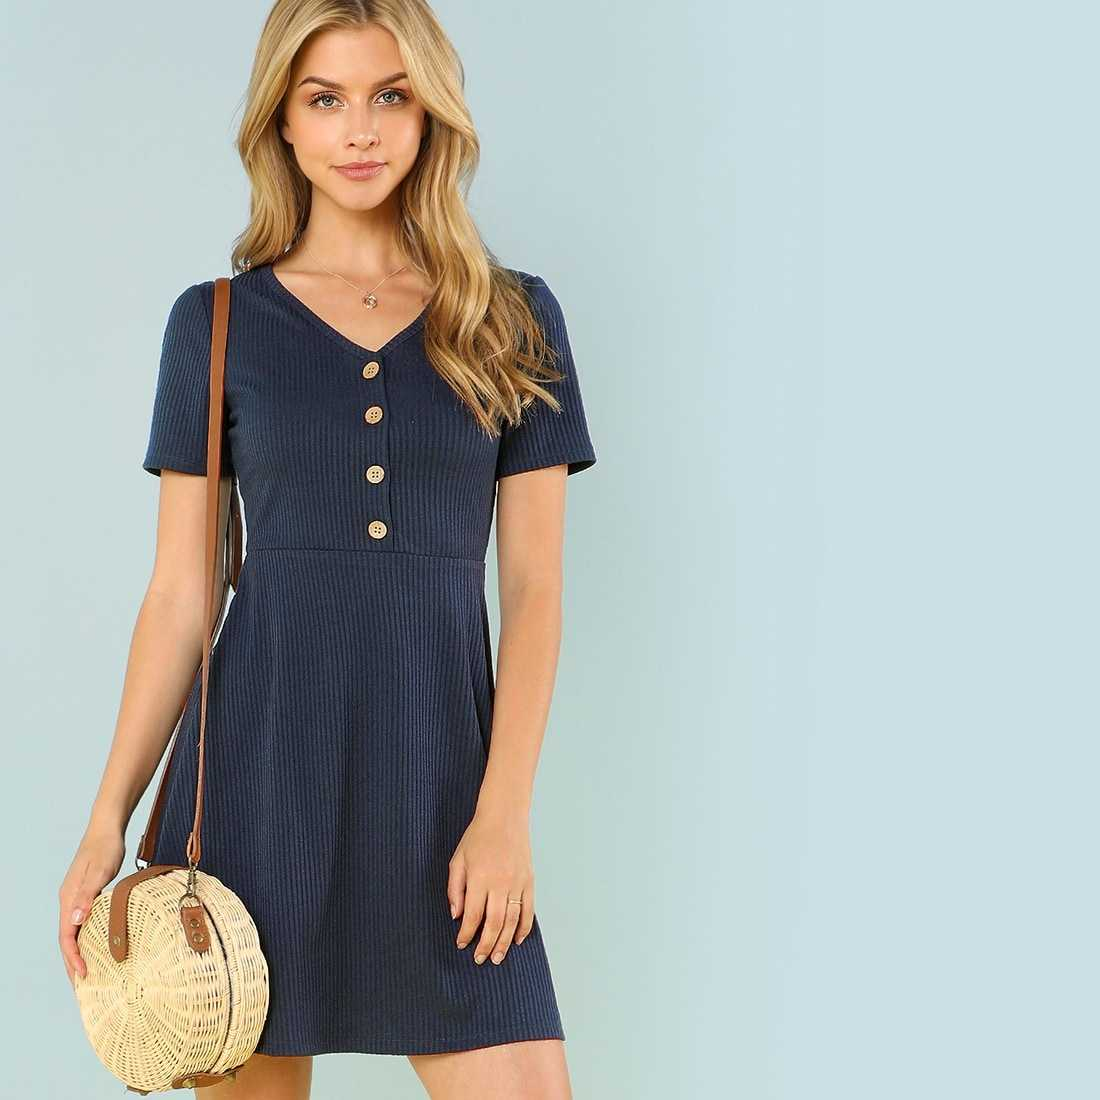 Button Up Rib Knit Dress in Navy by ROMWE on GOOFASH